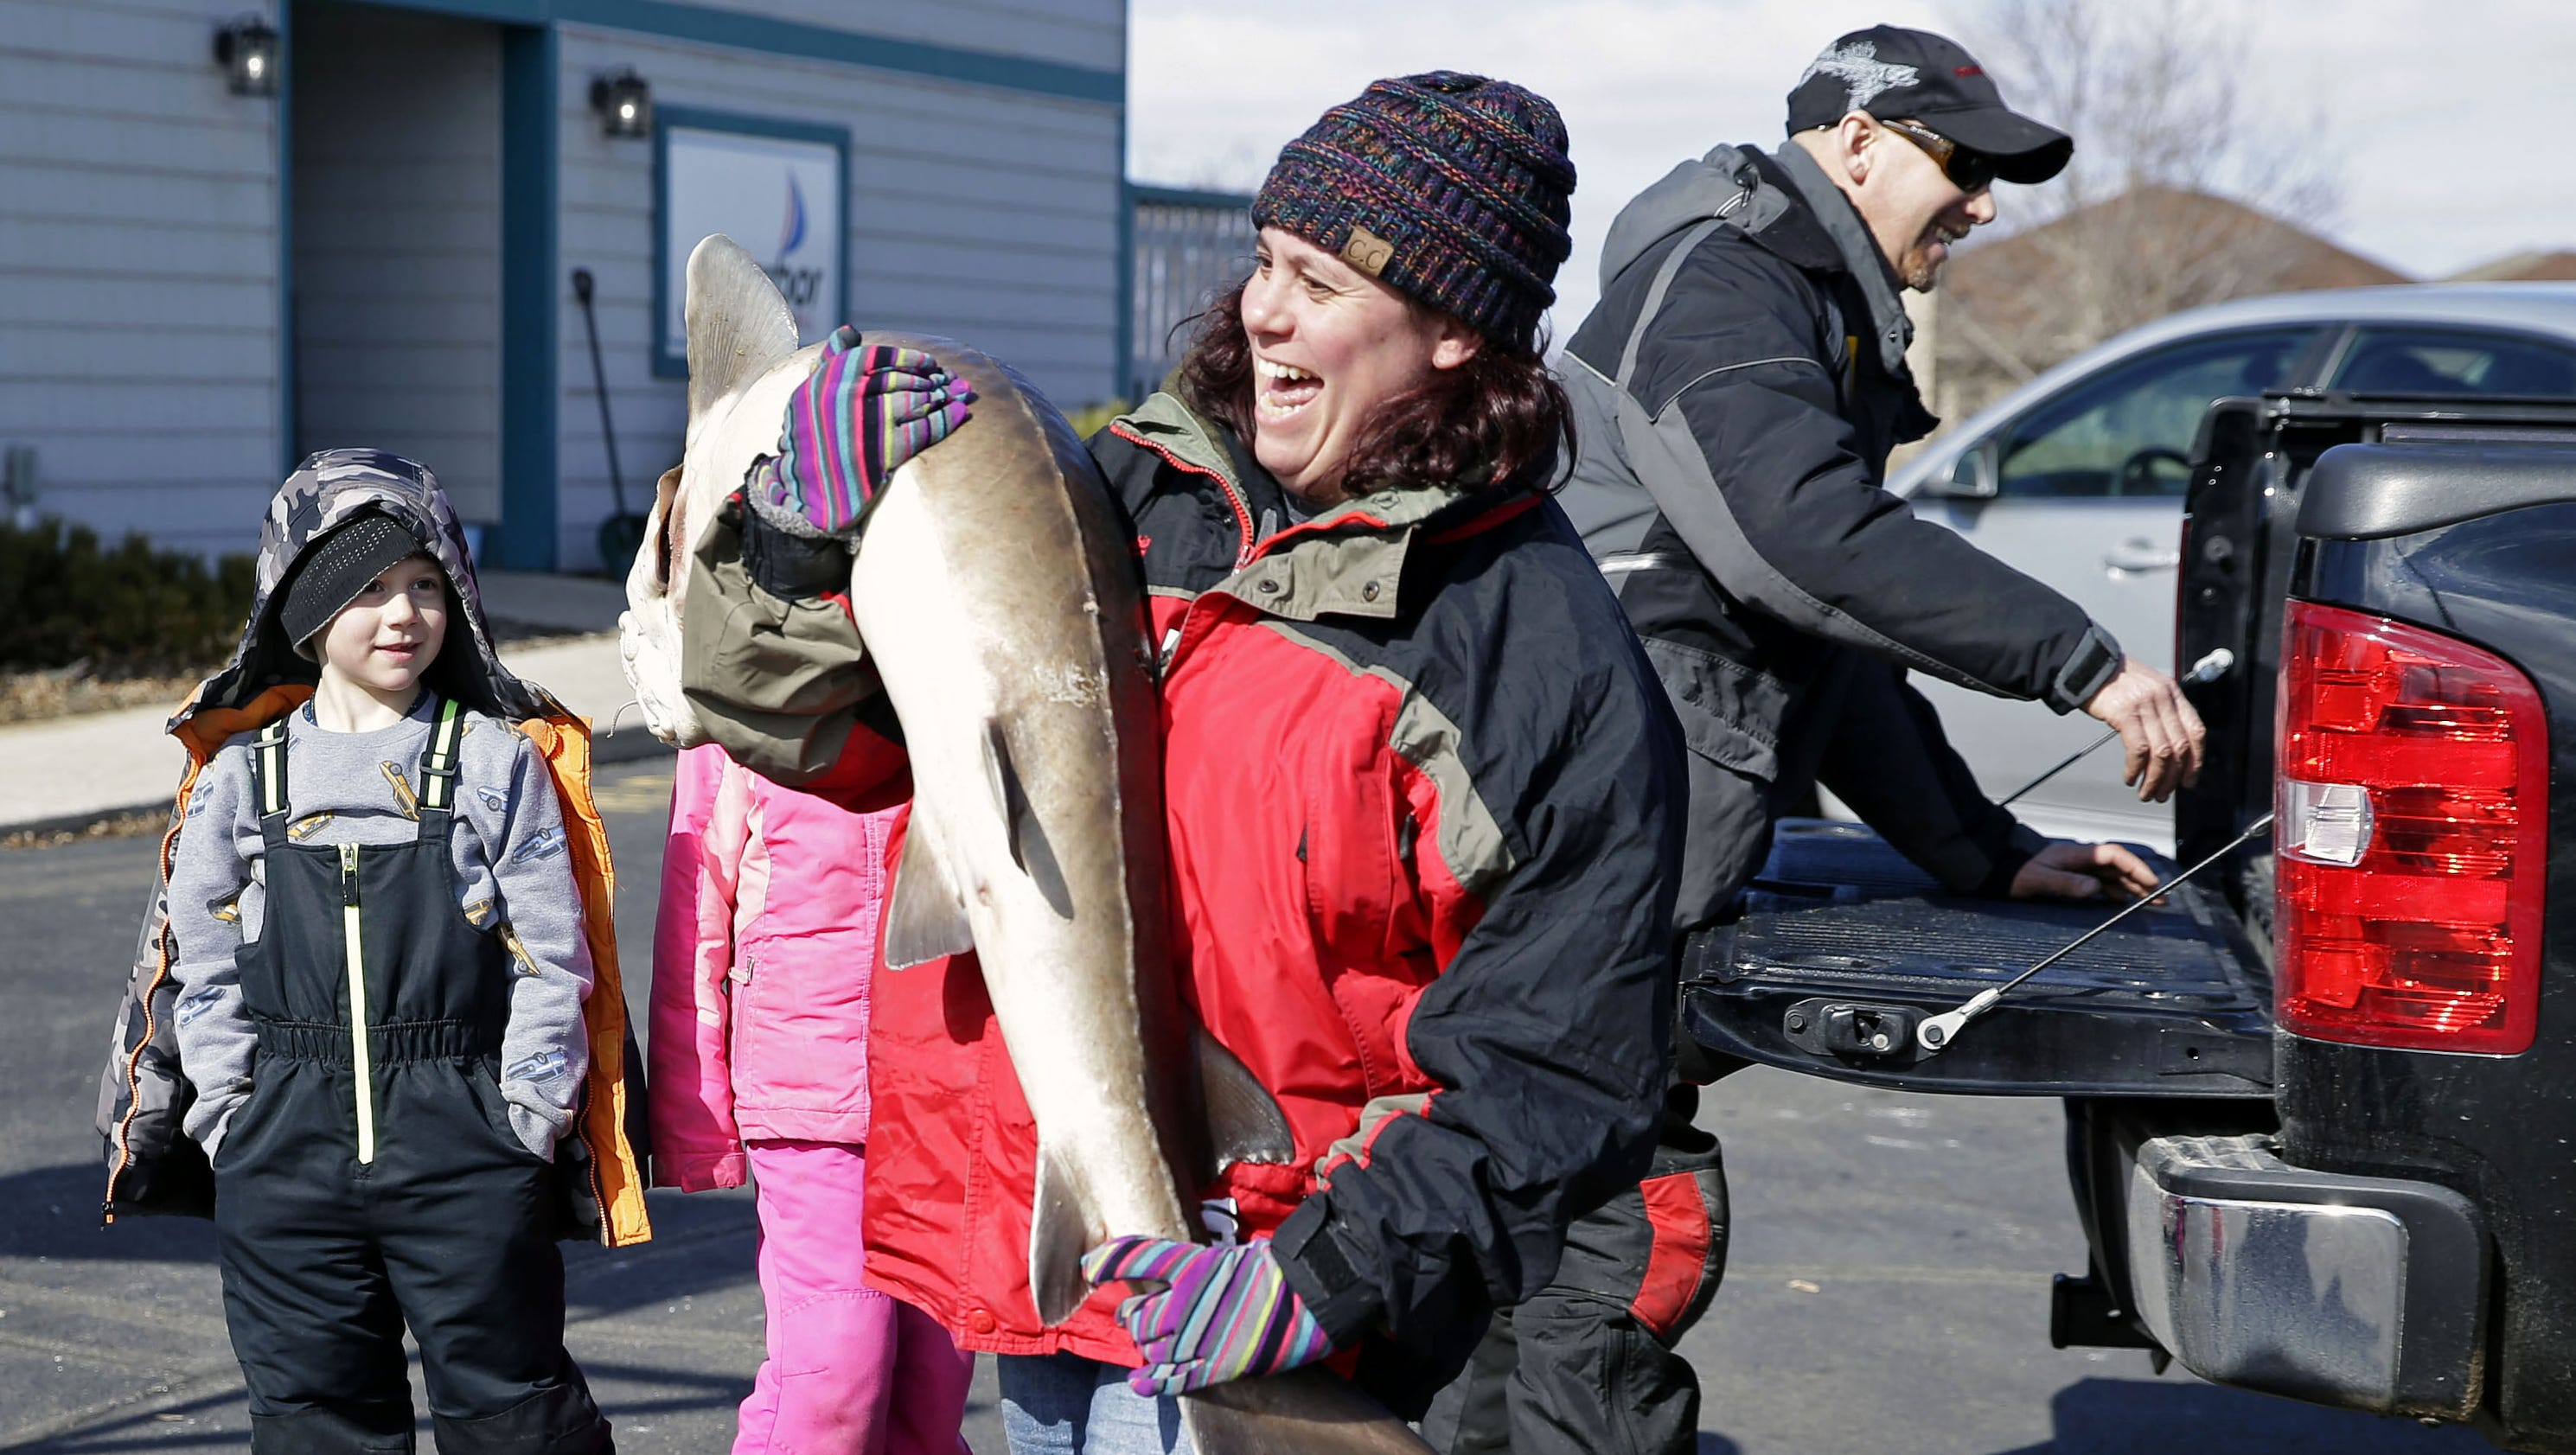 Sturgeon spearing es to a close on Lake Winnebago